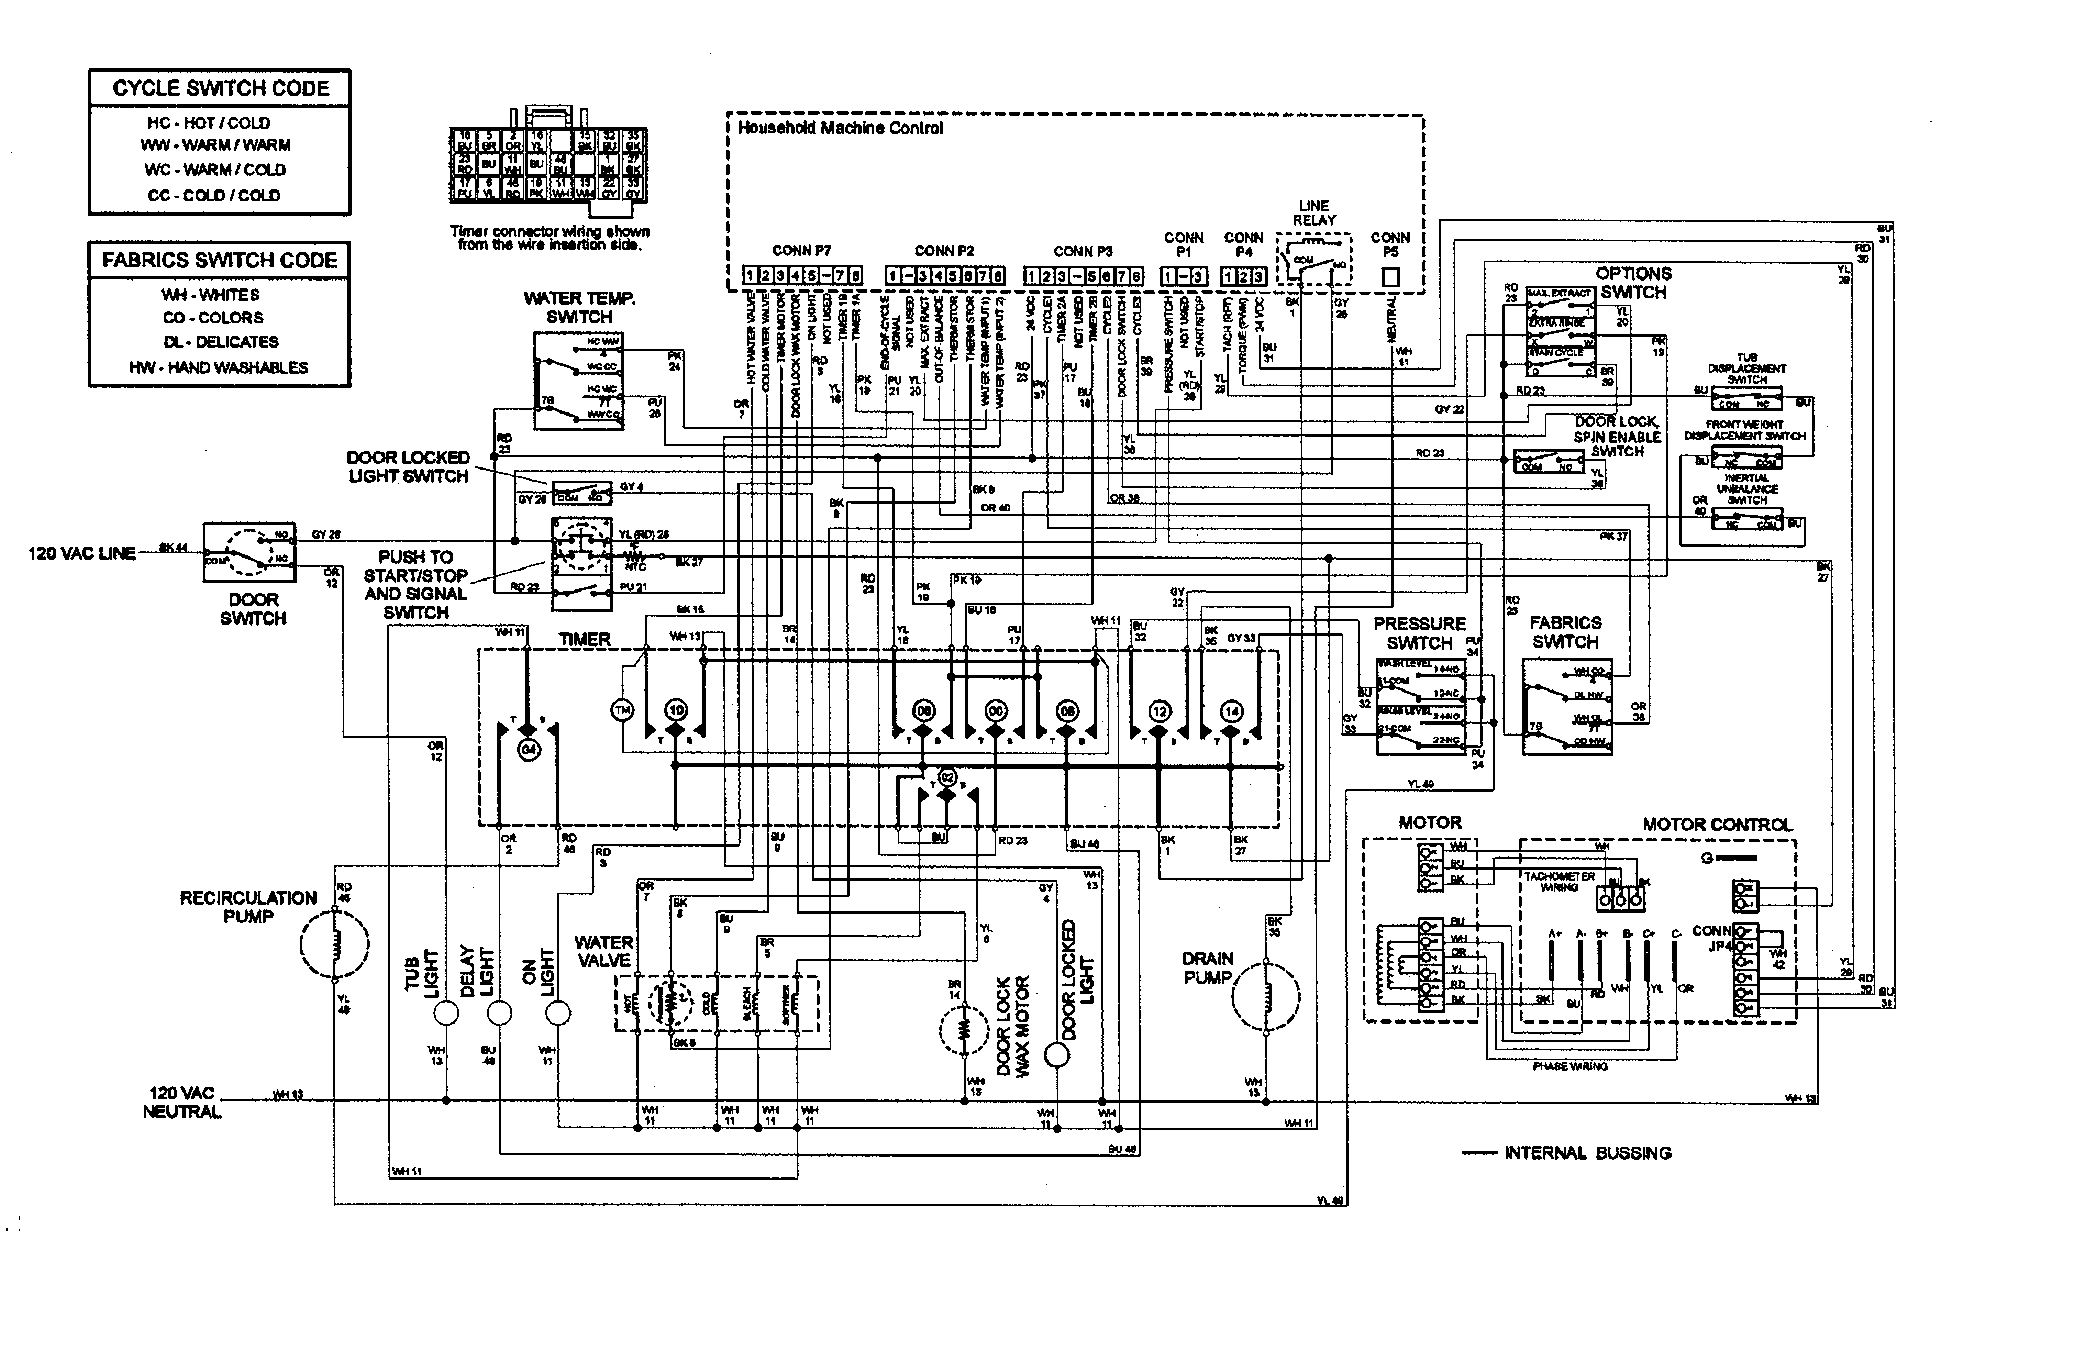 Whirlpool Dryer Wiring Diagram